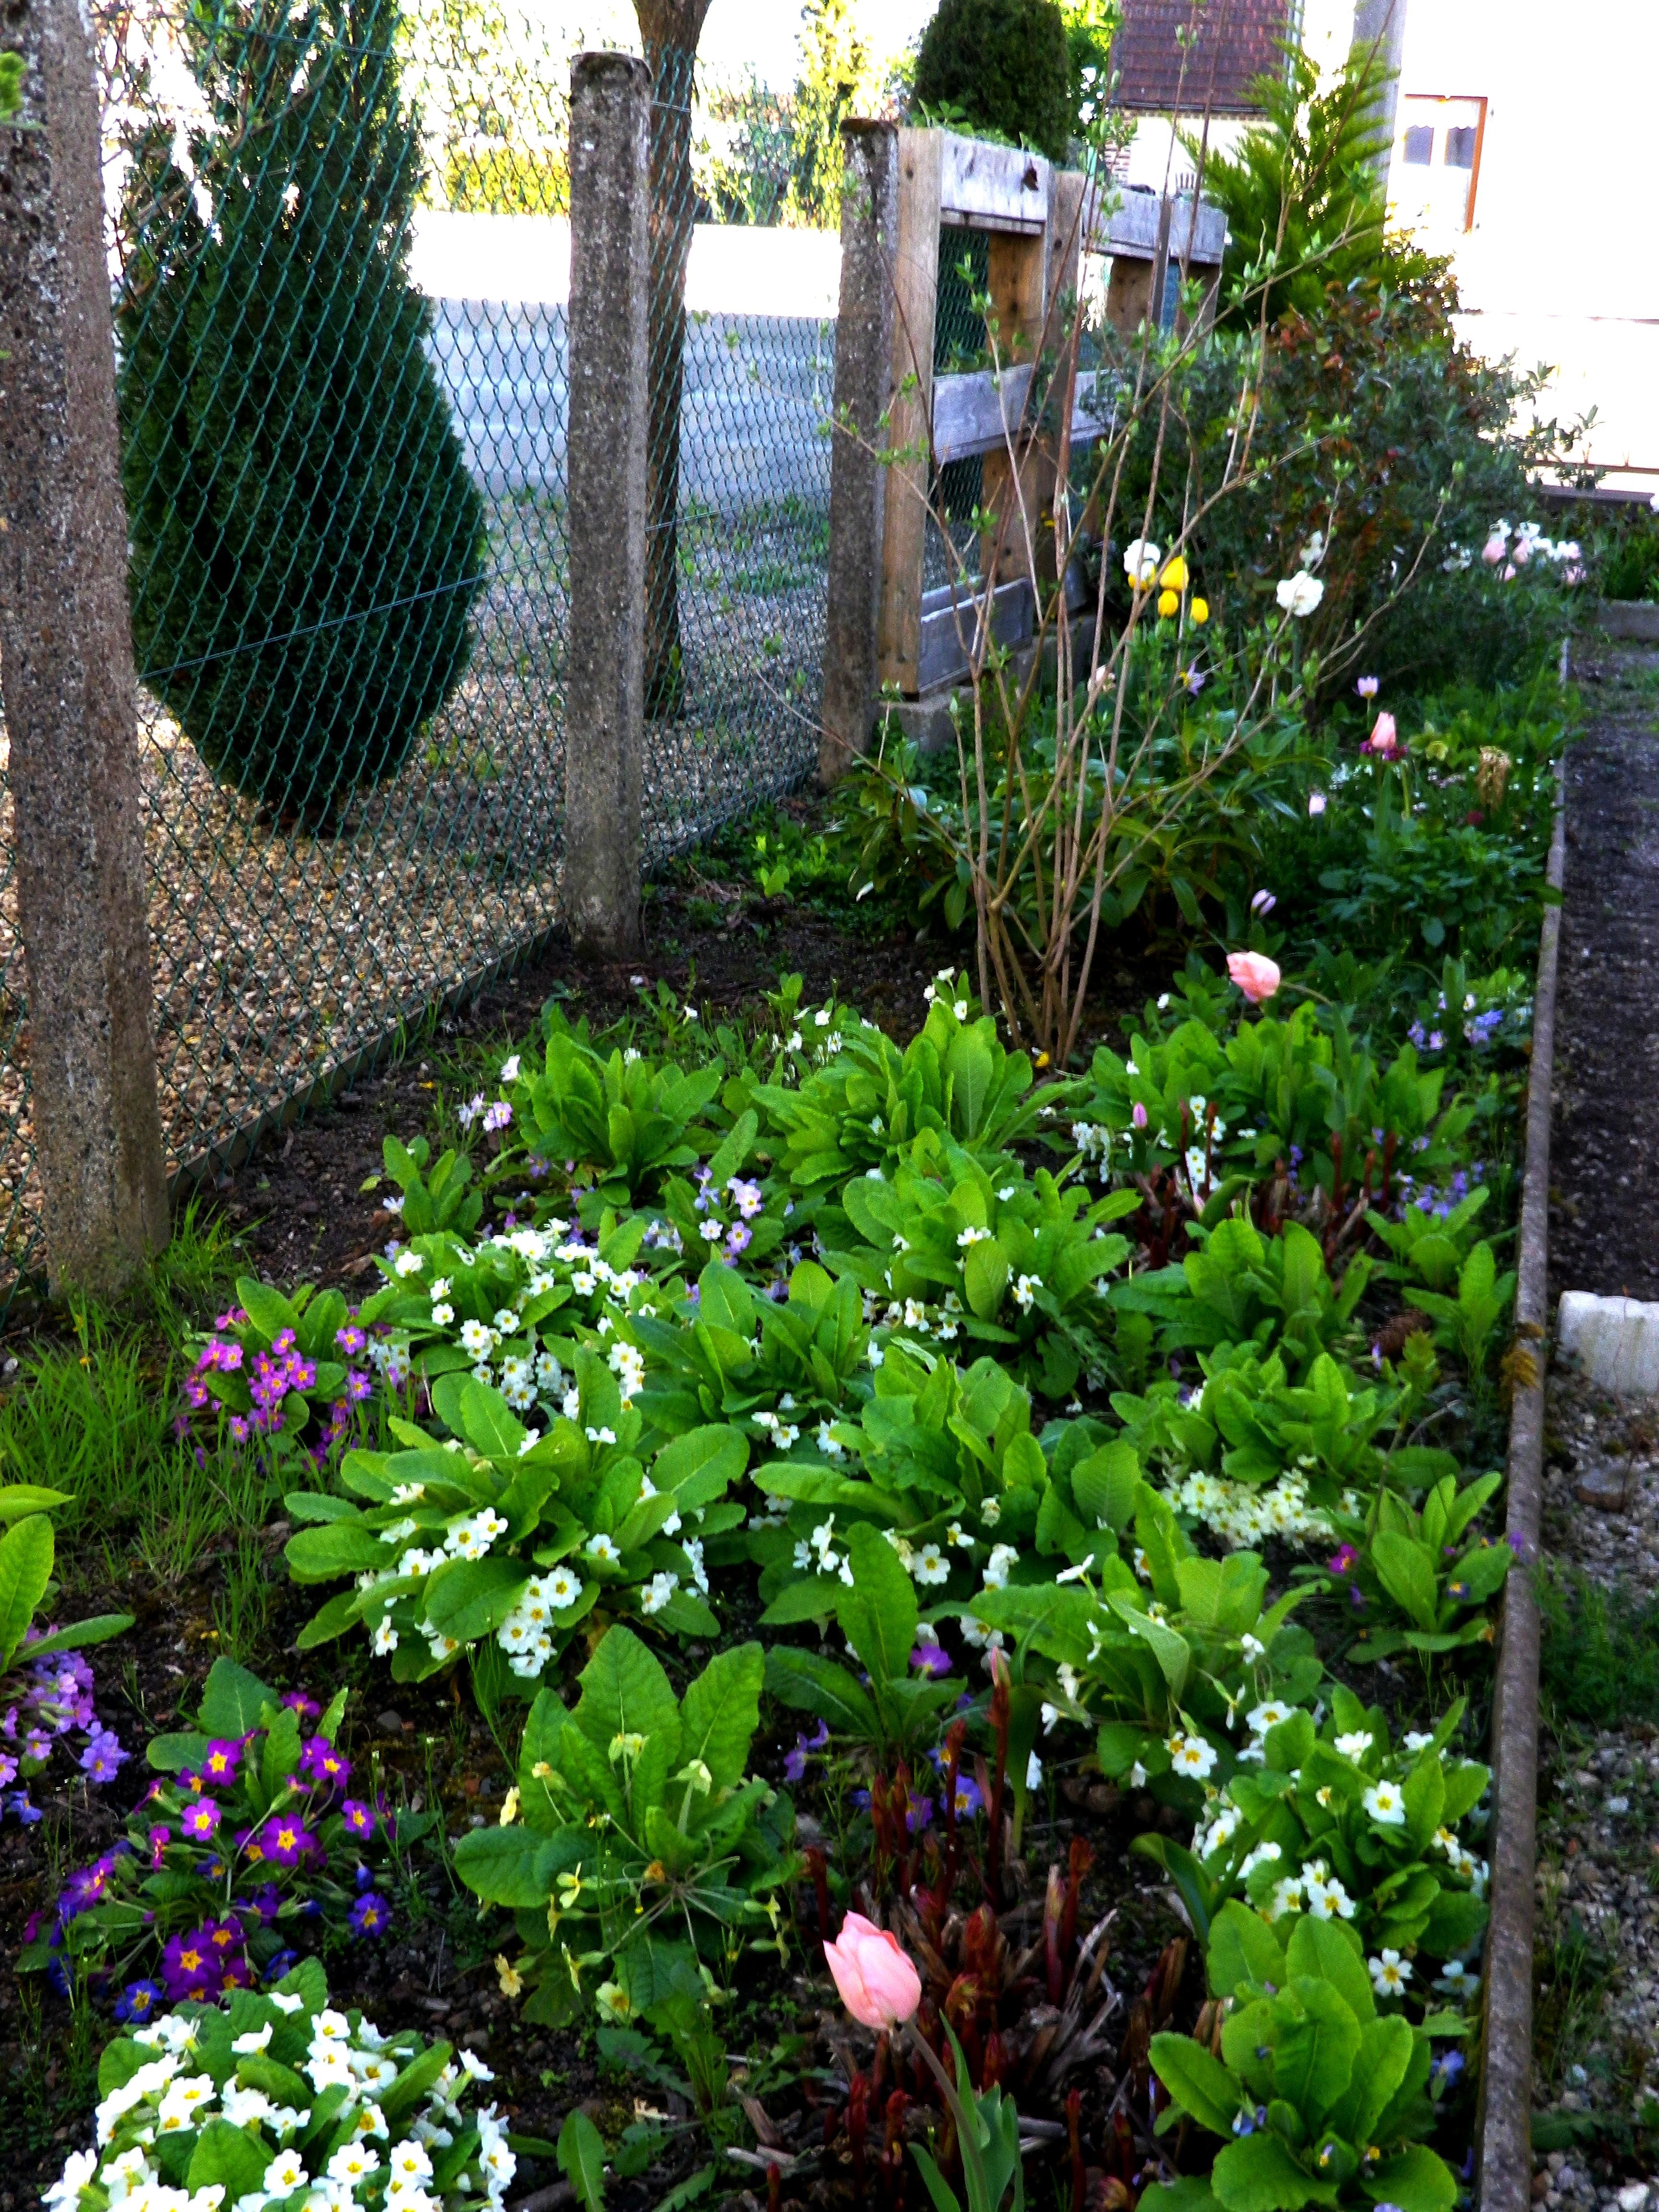 4 Seasons Permaculture Garden. Learn during what season the flowers bloom and their names